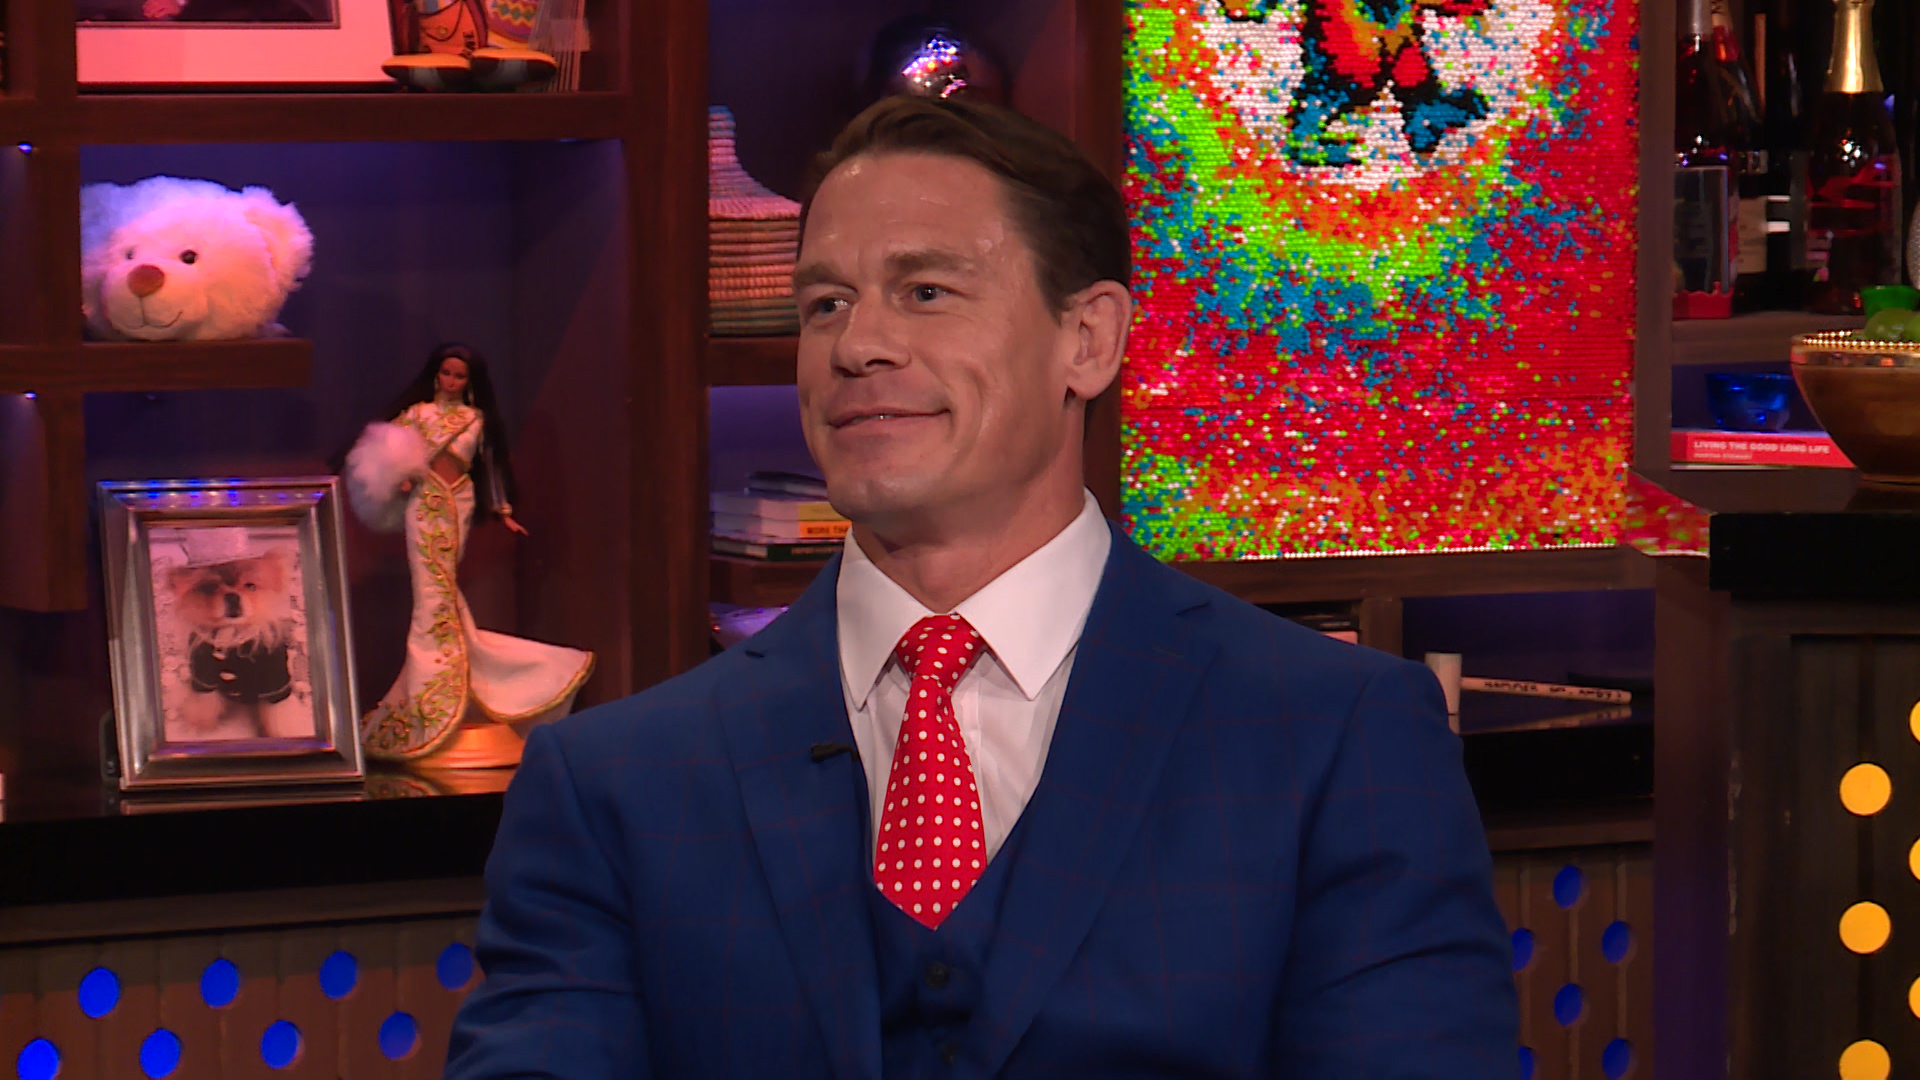 John Cena Swoons over Dwayne Johnson